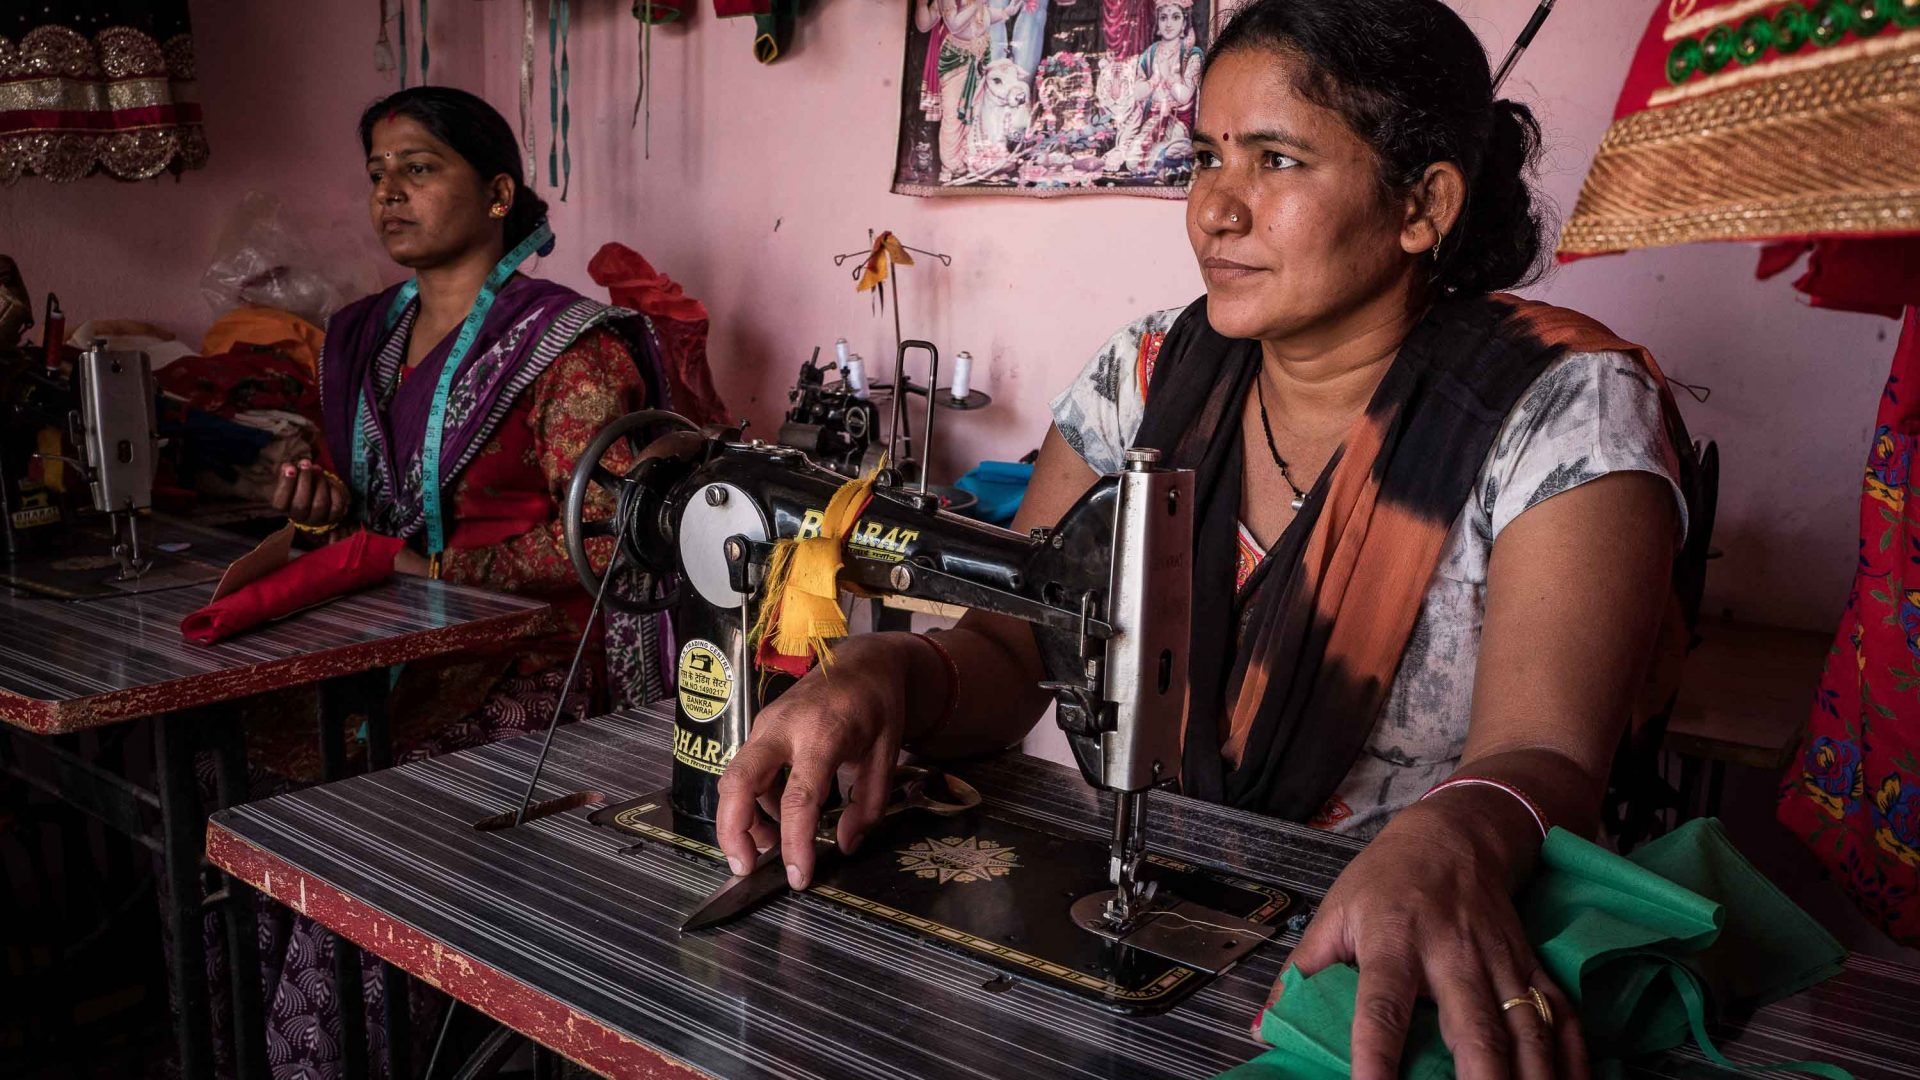 Devi Kapade married when she was 15 years old and at 25 she was widowed with three daughters. WHR gave her three sewing machines to help her achieve economic independence.